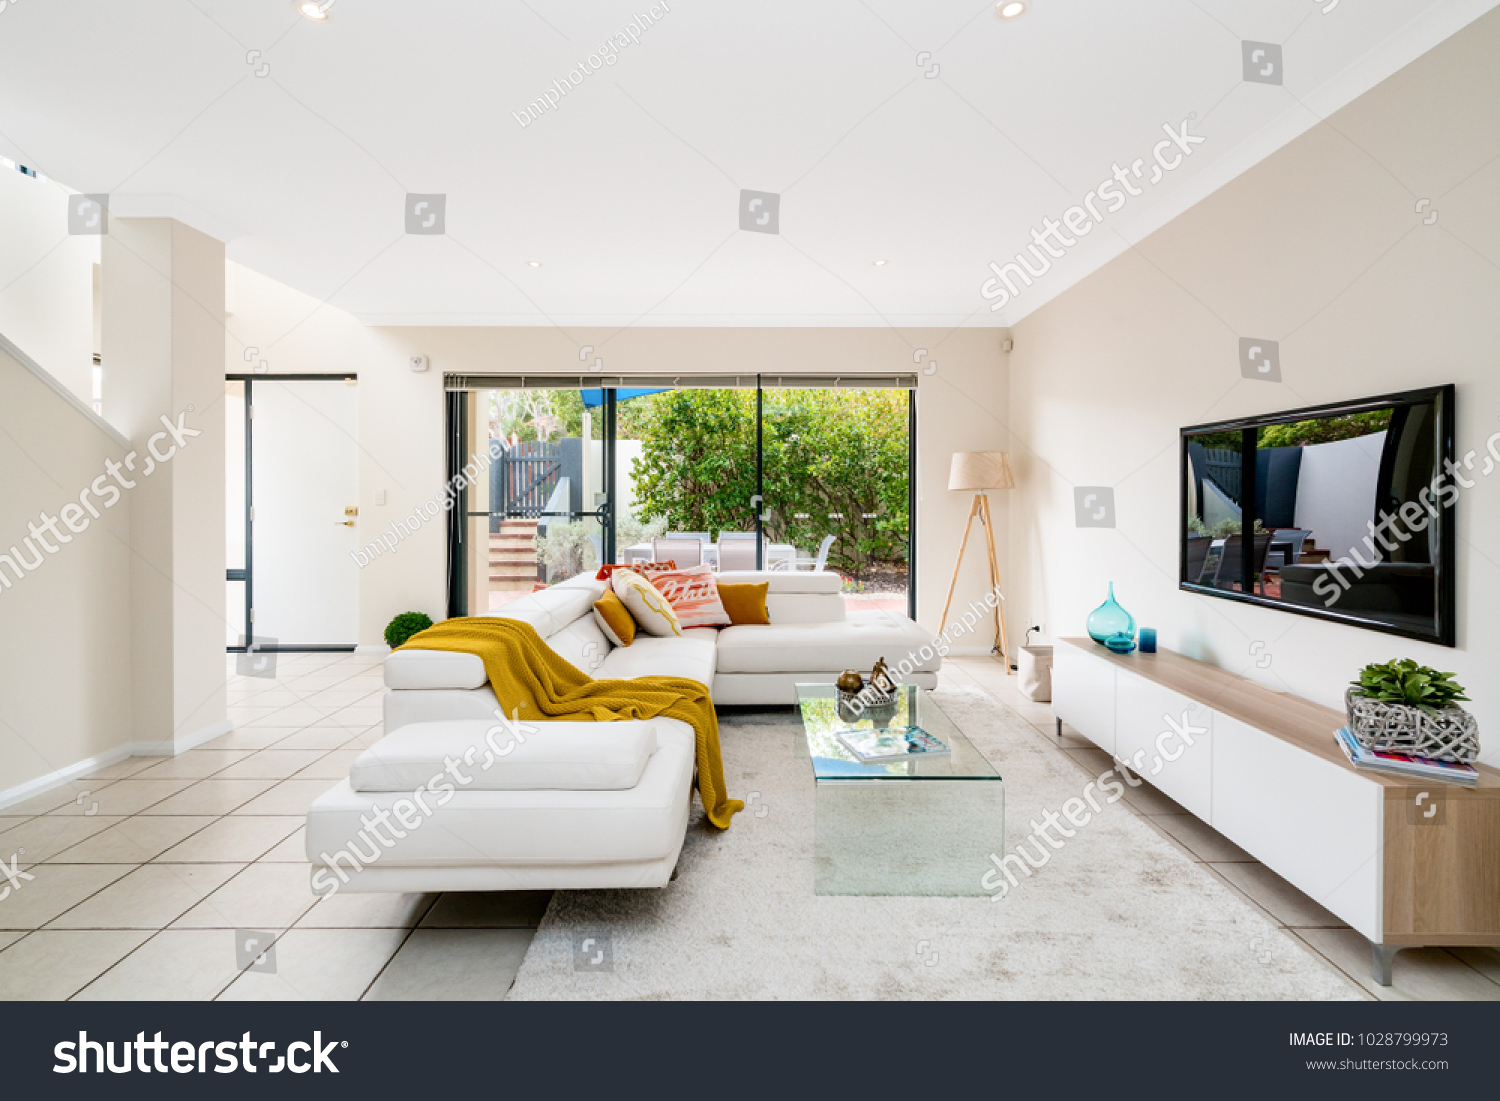 Colourful home interior with modern furniture and decor perth western australia photographed